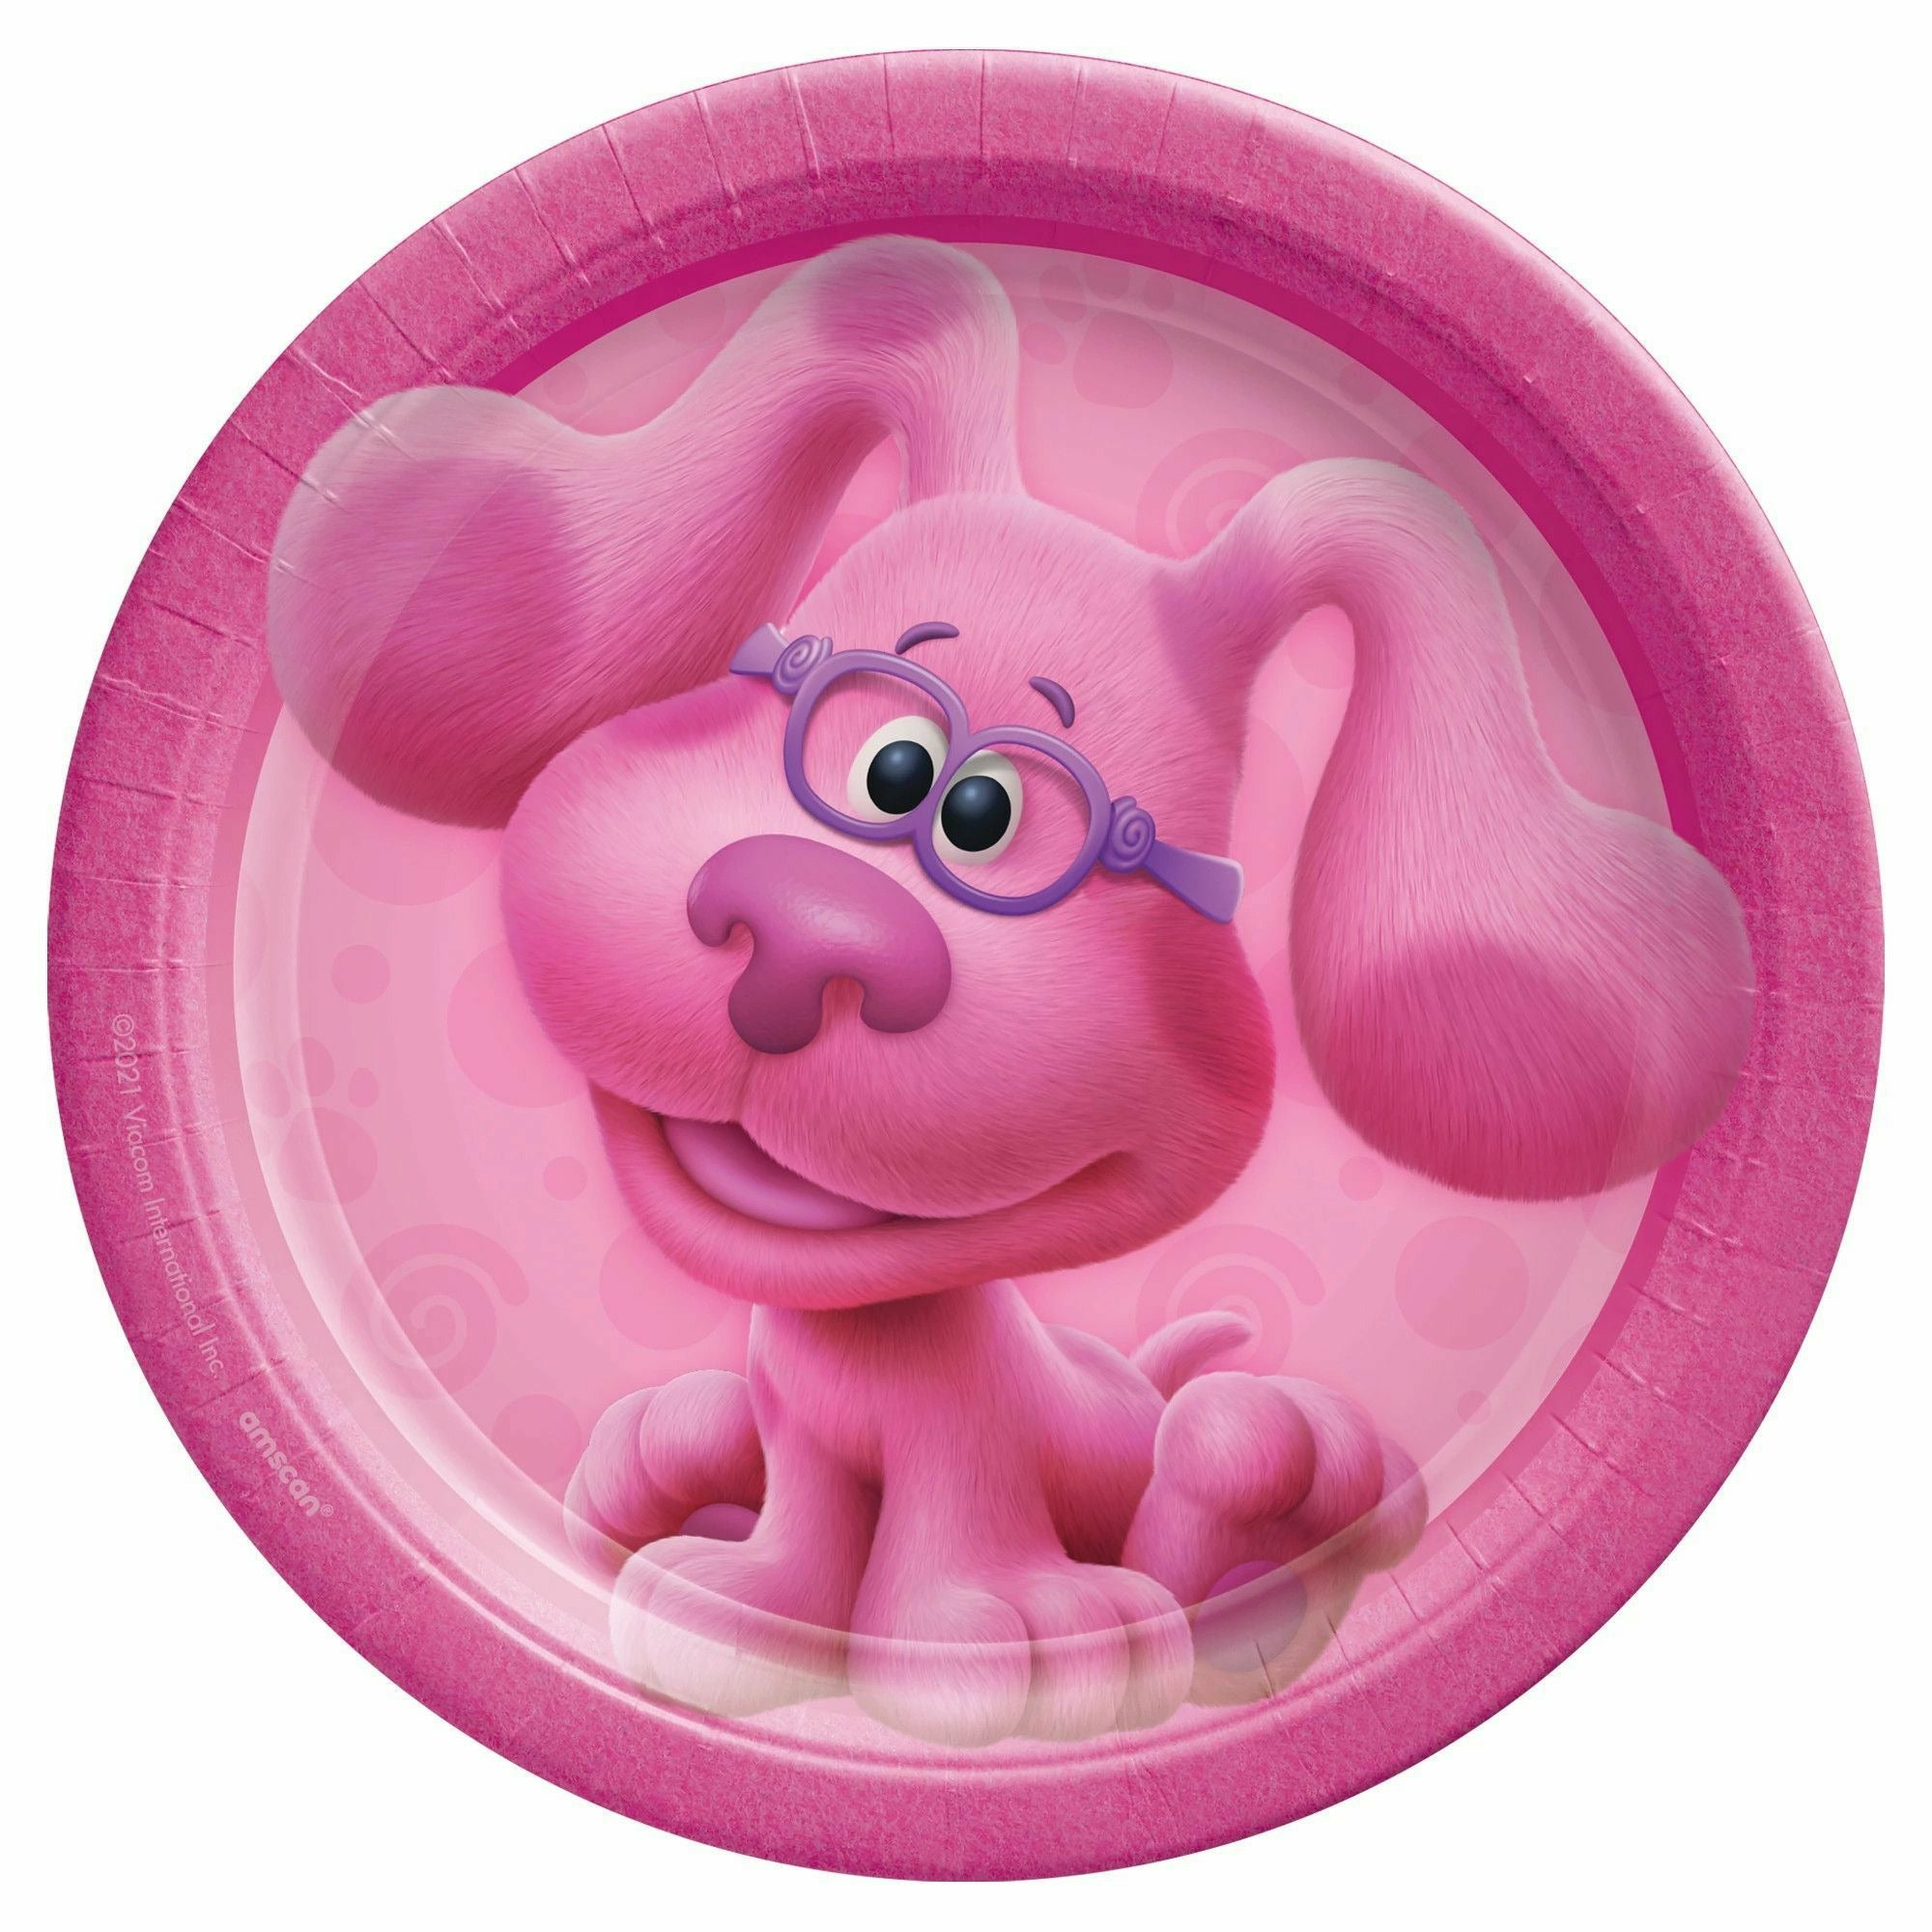 "Blues Clues 7"" Round Plates - Pink"